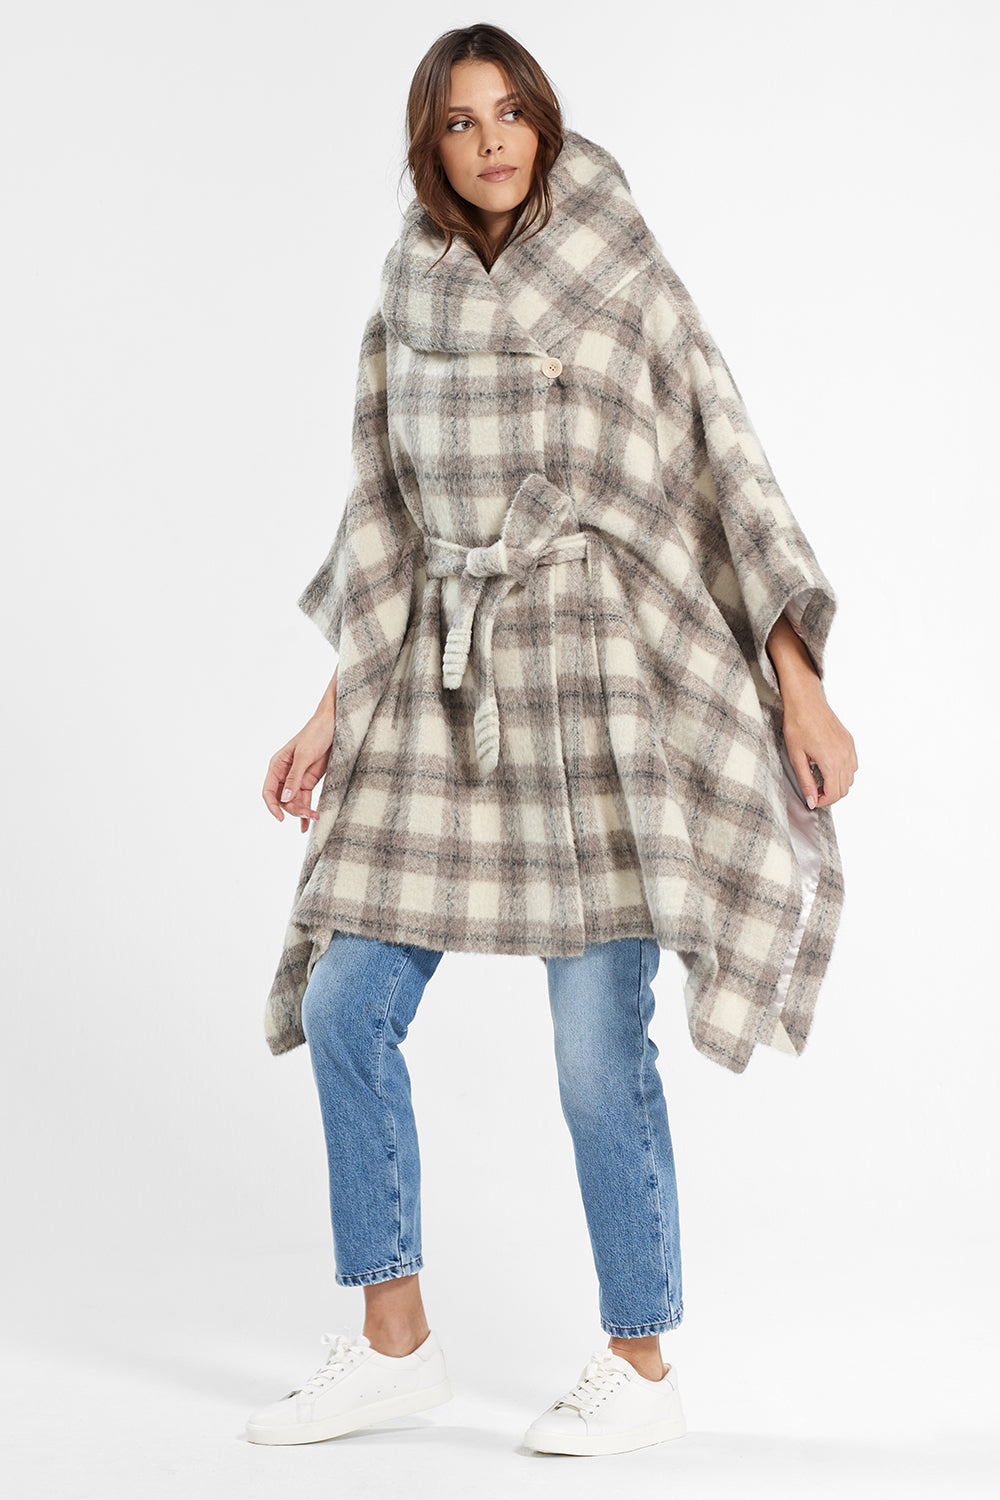 Sentaler Plaid Oversized Hooded Poncho with Belt featured in Suri Alpaca and available in Ecru Plaid. Seen from side.